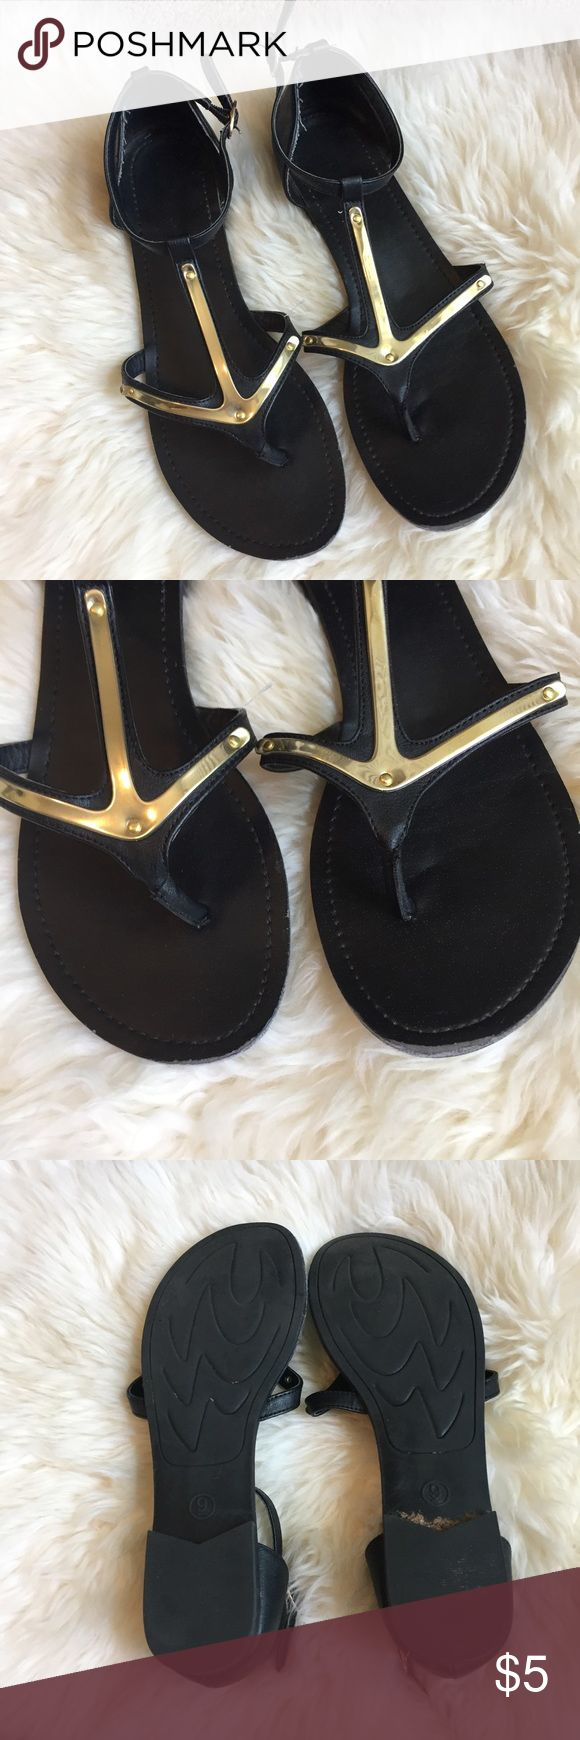 Gold anchor sandals Mossimo gold anchor sandals. Size 9. Good used condition. Mossimo Supply Co Shoes Sandals